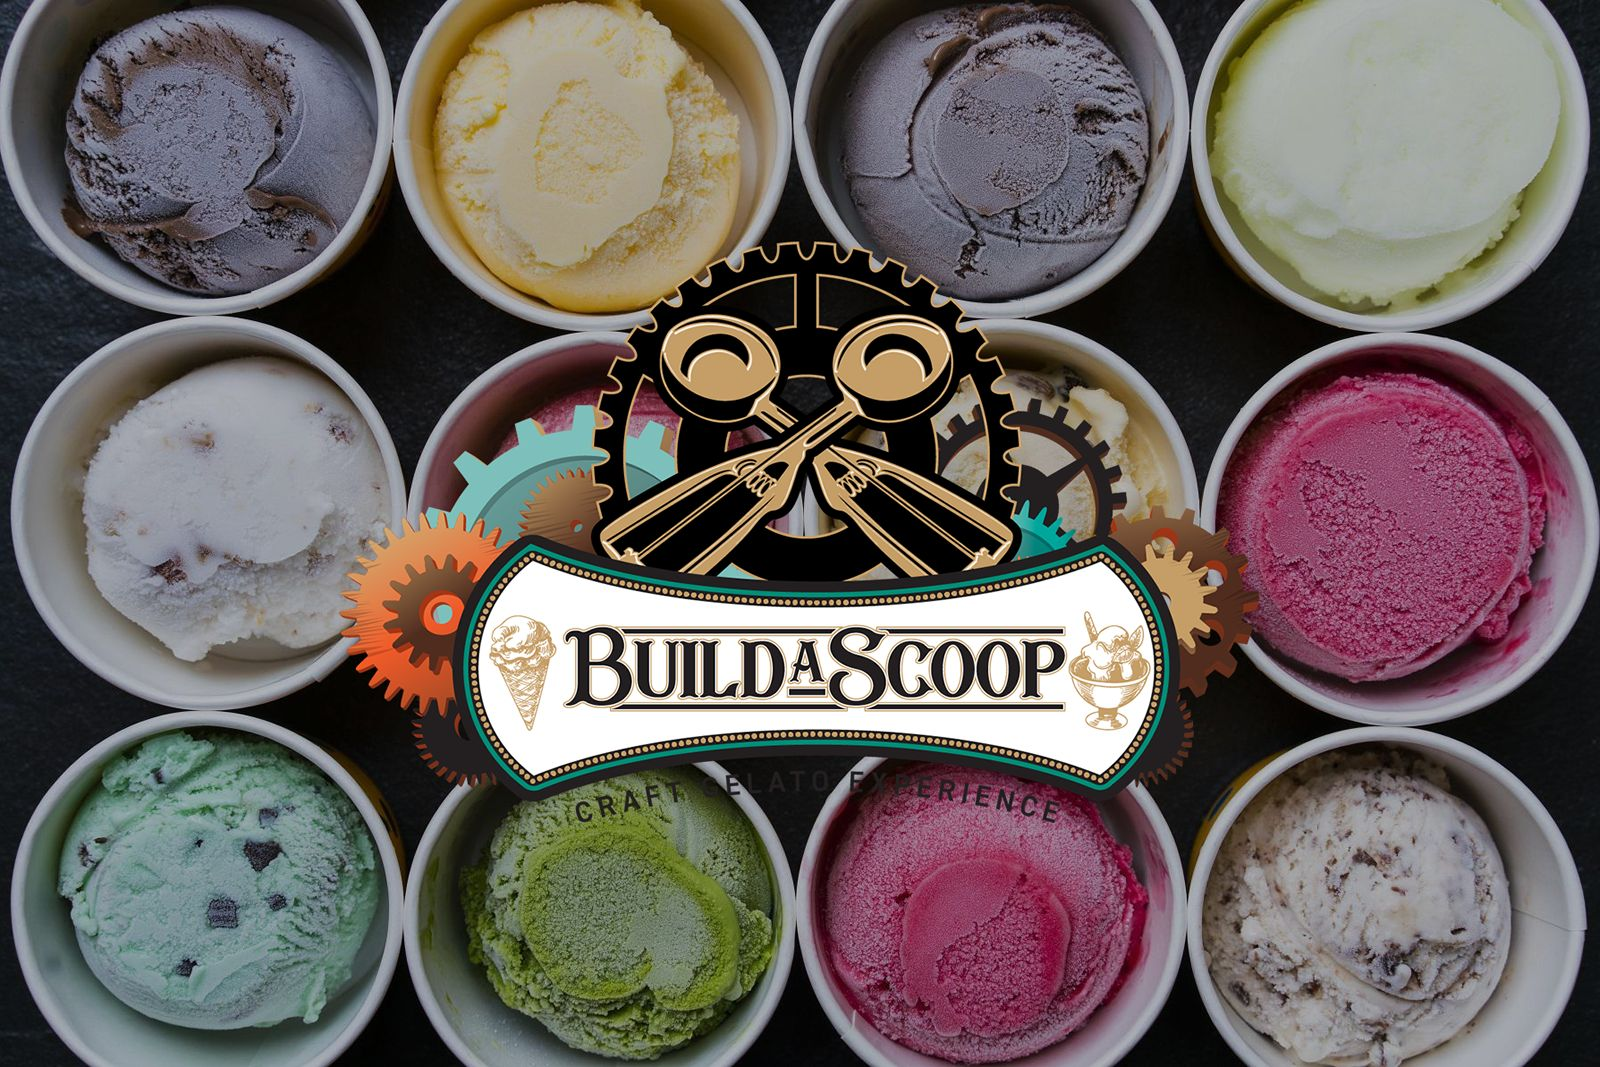 Build A Scoop Craft Gelato Experience Is Officially Ready to Serve Scoops and Community Fun in San Bernardino